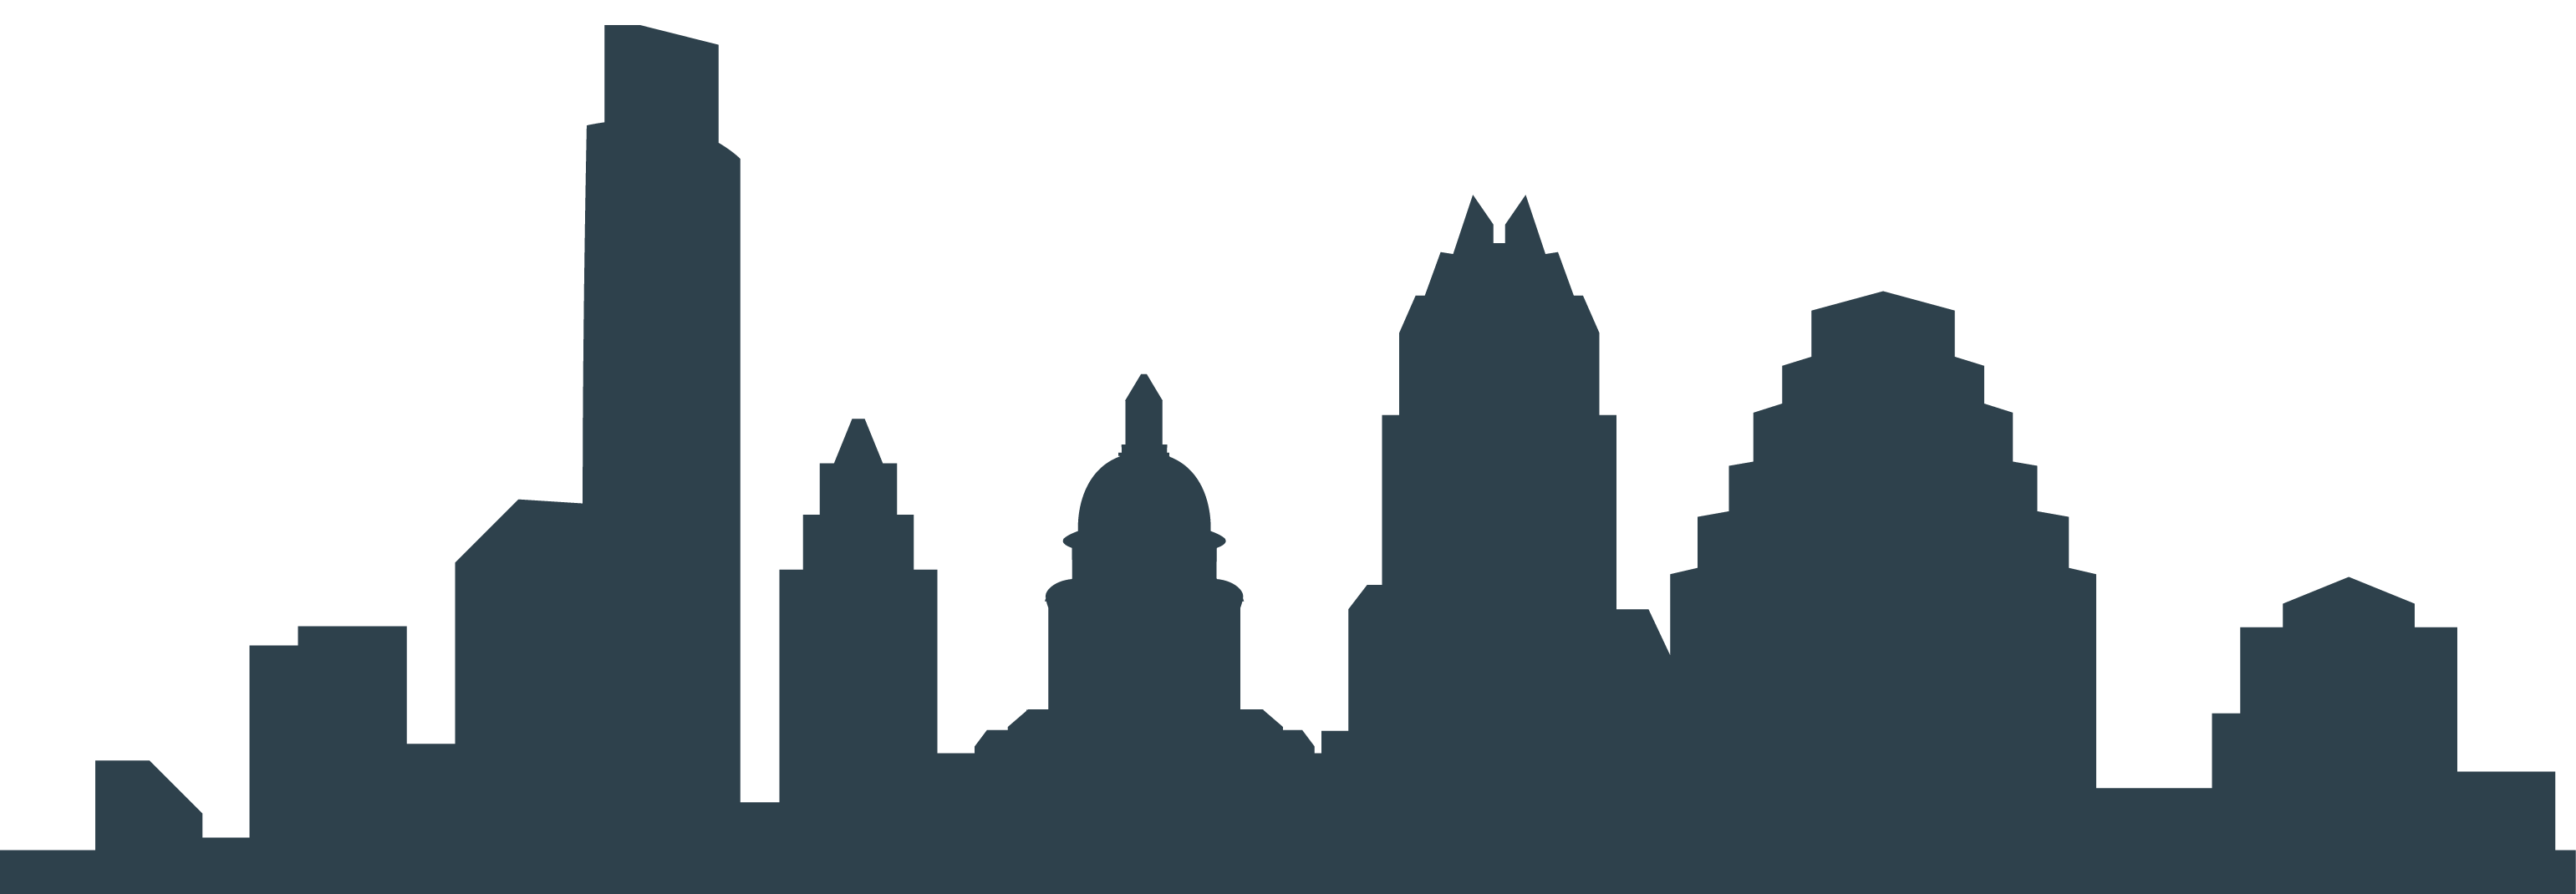 3082x1070 Boston Drawing Skyline Outline Transparent Png Clipart Free